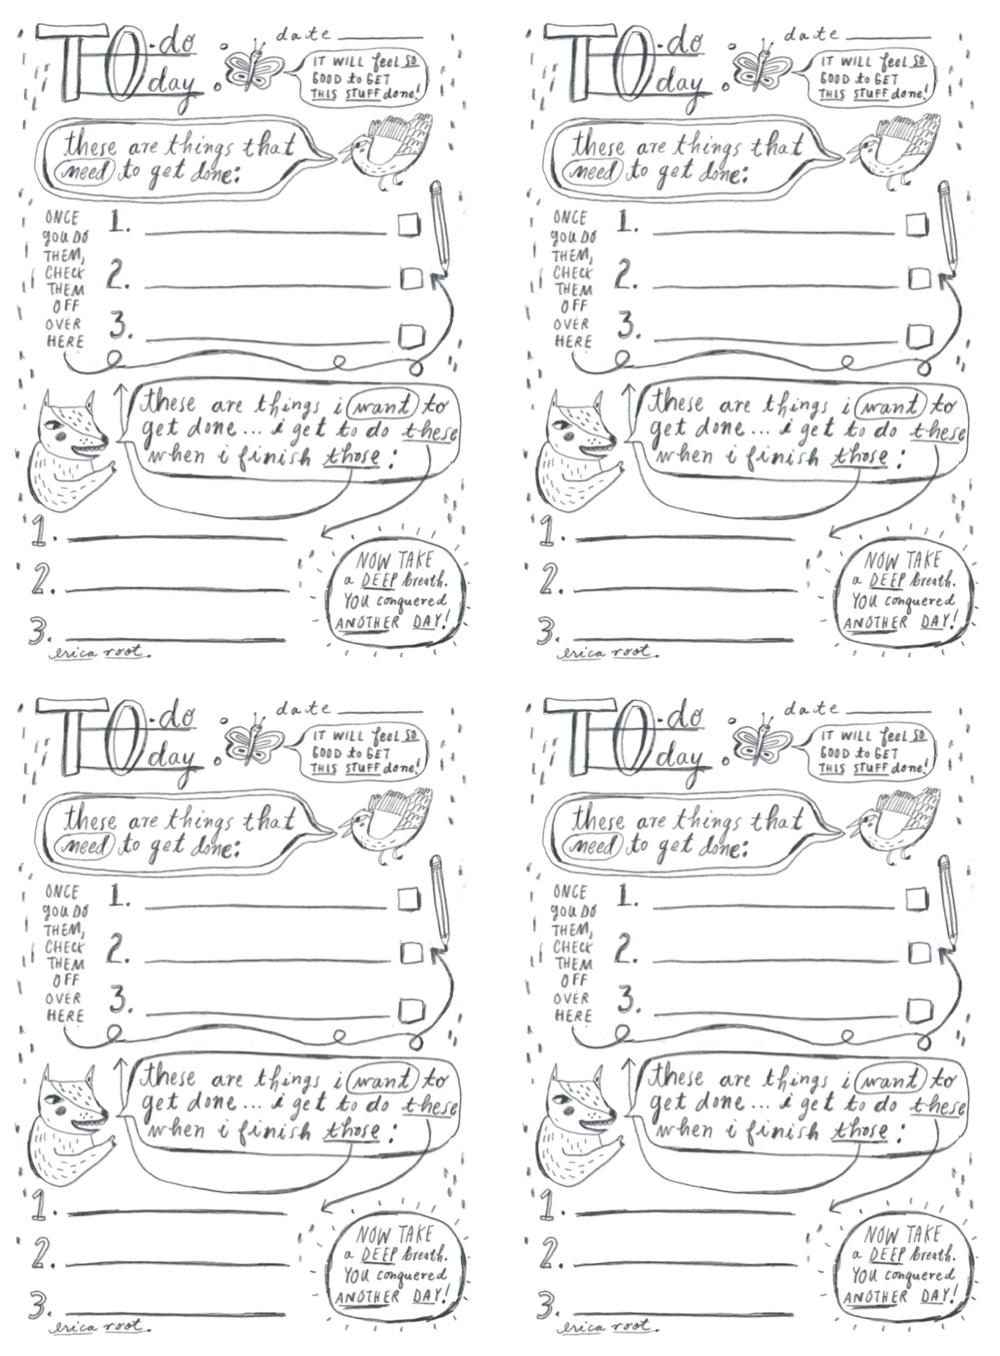 Erica Root, Daily Checklists (4 per sheet)